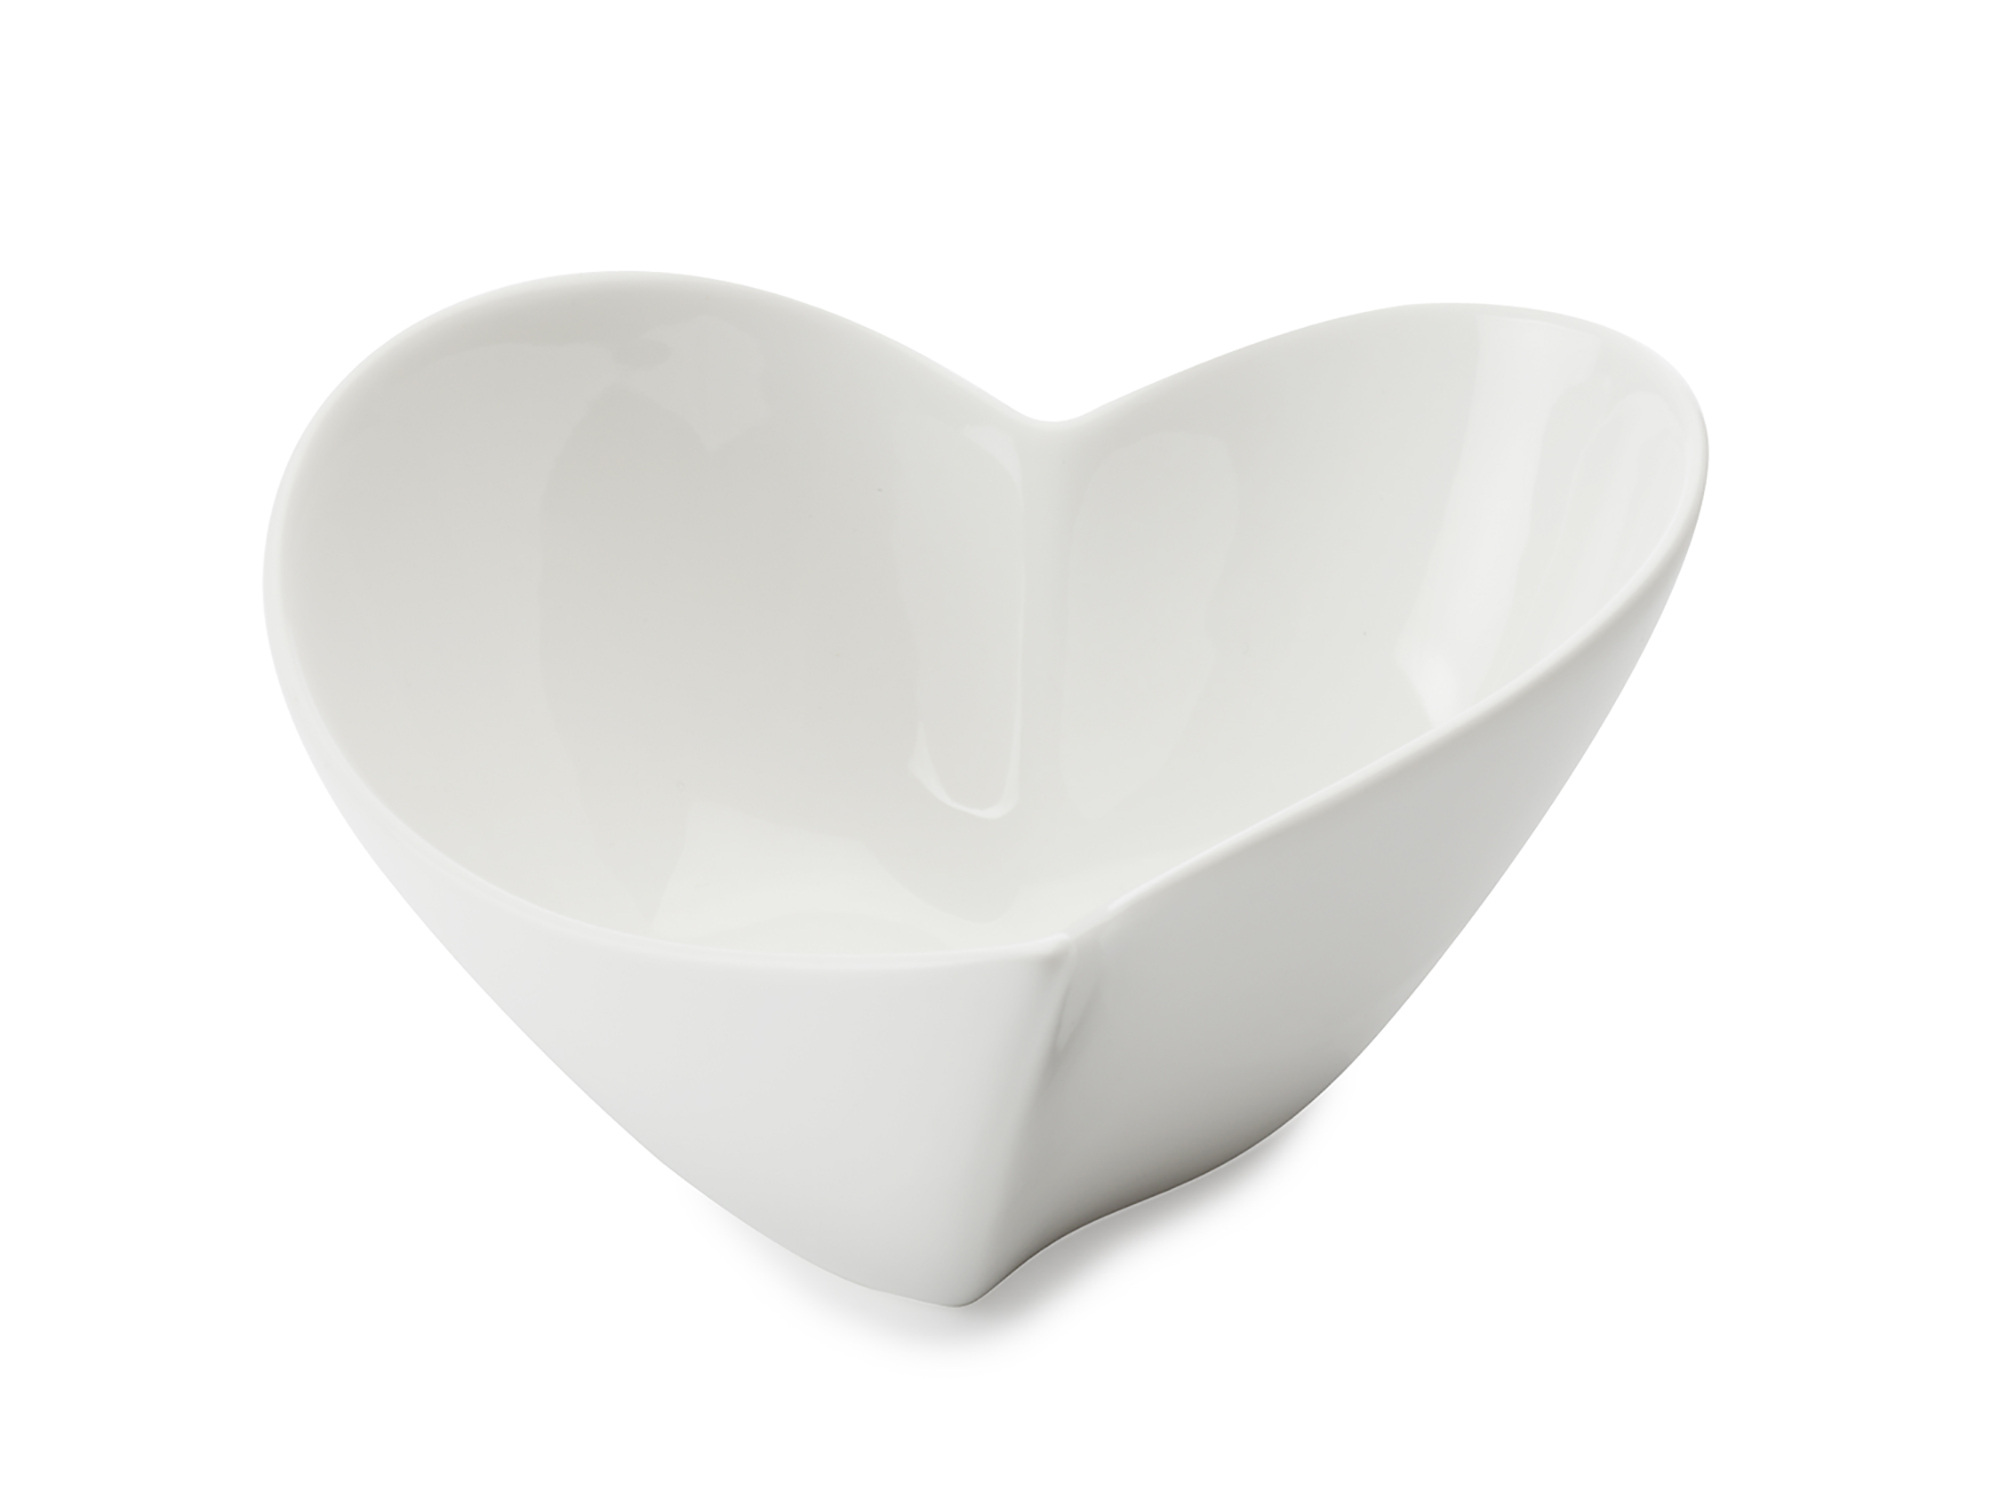 Maxwell & Williams White Basics Heart 17Cm Bowl